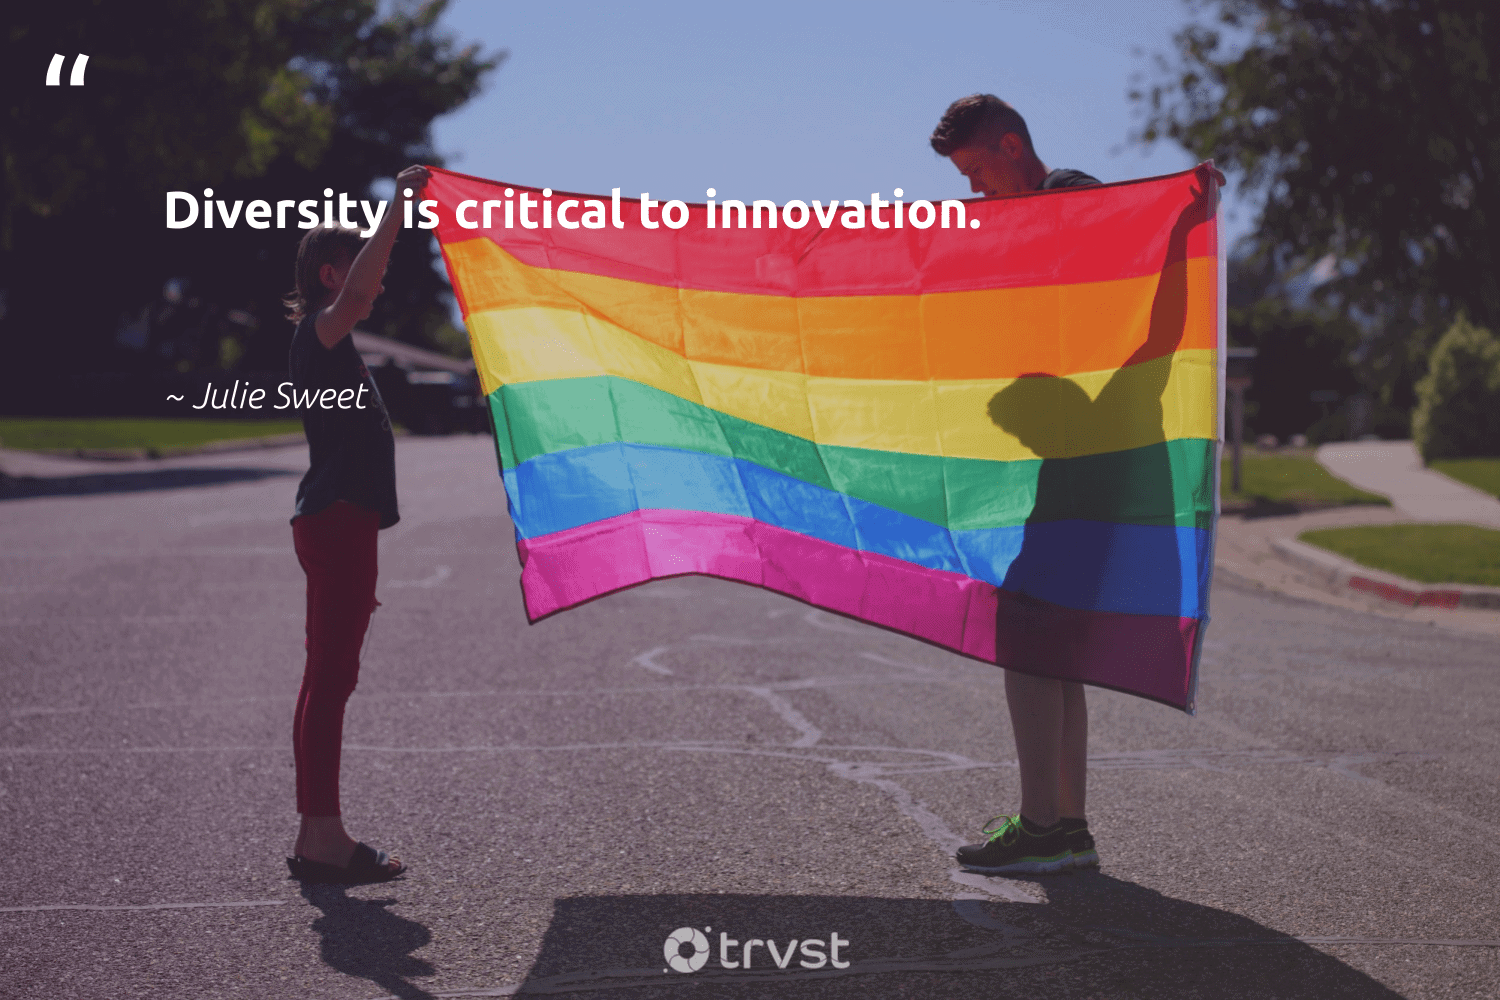 """""""Diversity is critical to innovation.""""  - Julie Sweet #trvst #quotes #diversity #discrimination #representationmatters #socialchange #giveback #impact #inclusion #makeadifference #weareallone #dosomething"""